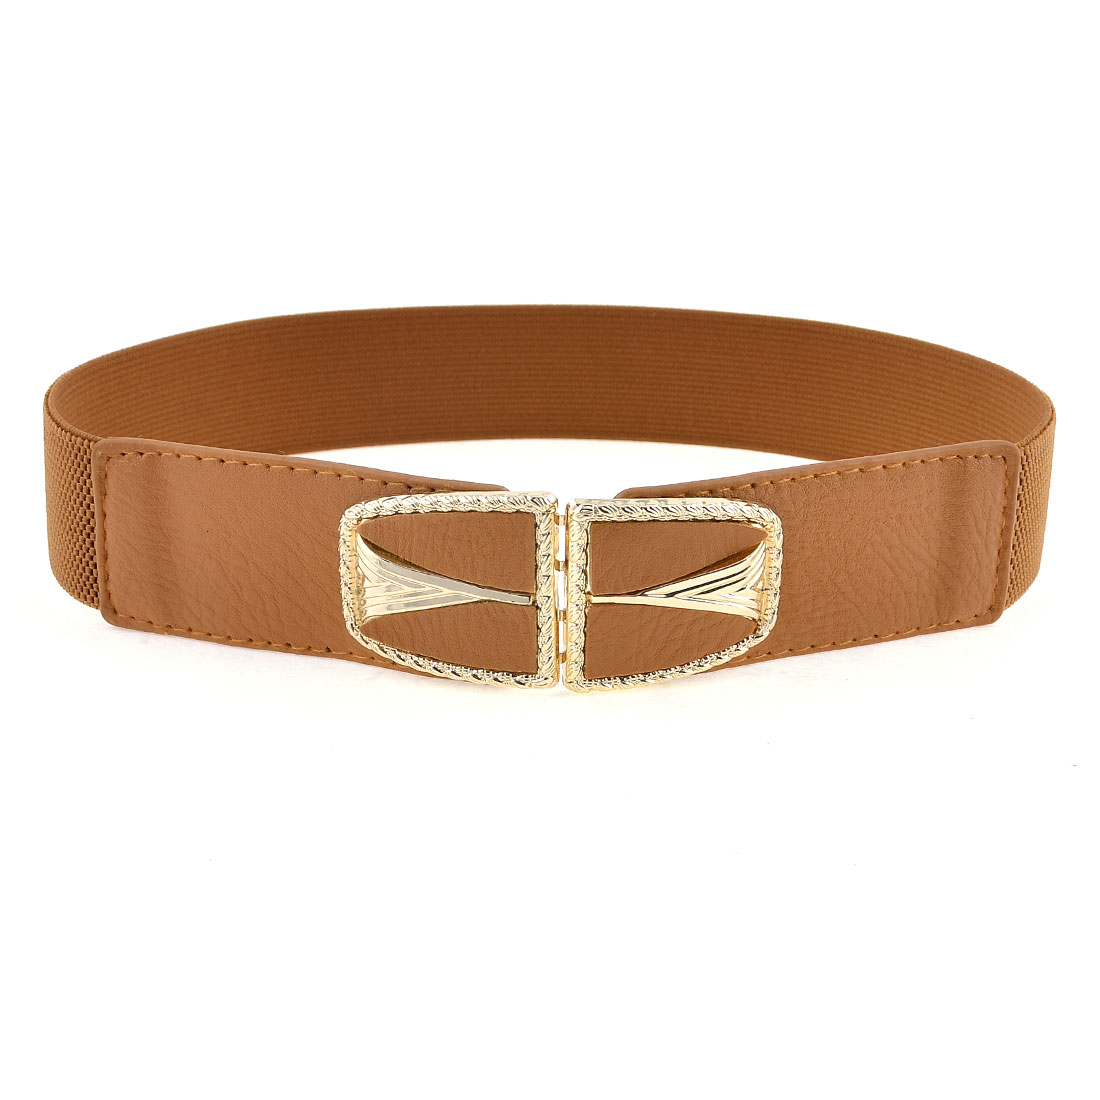 Ellipse Design Metal Interlock Buckle Elastic Waist Belt Band Brown for Ladies